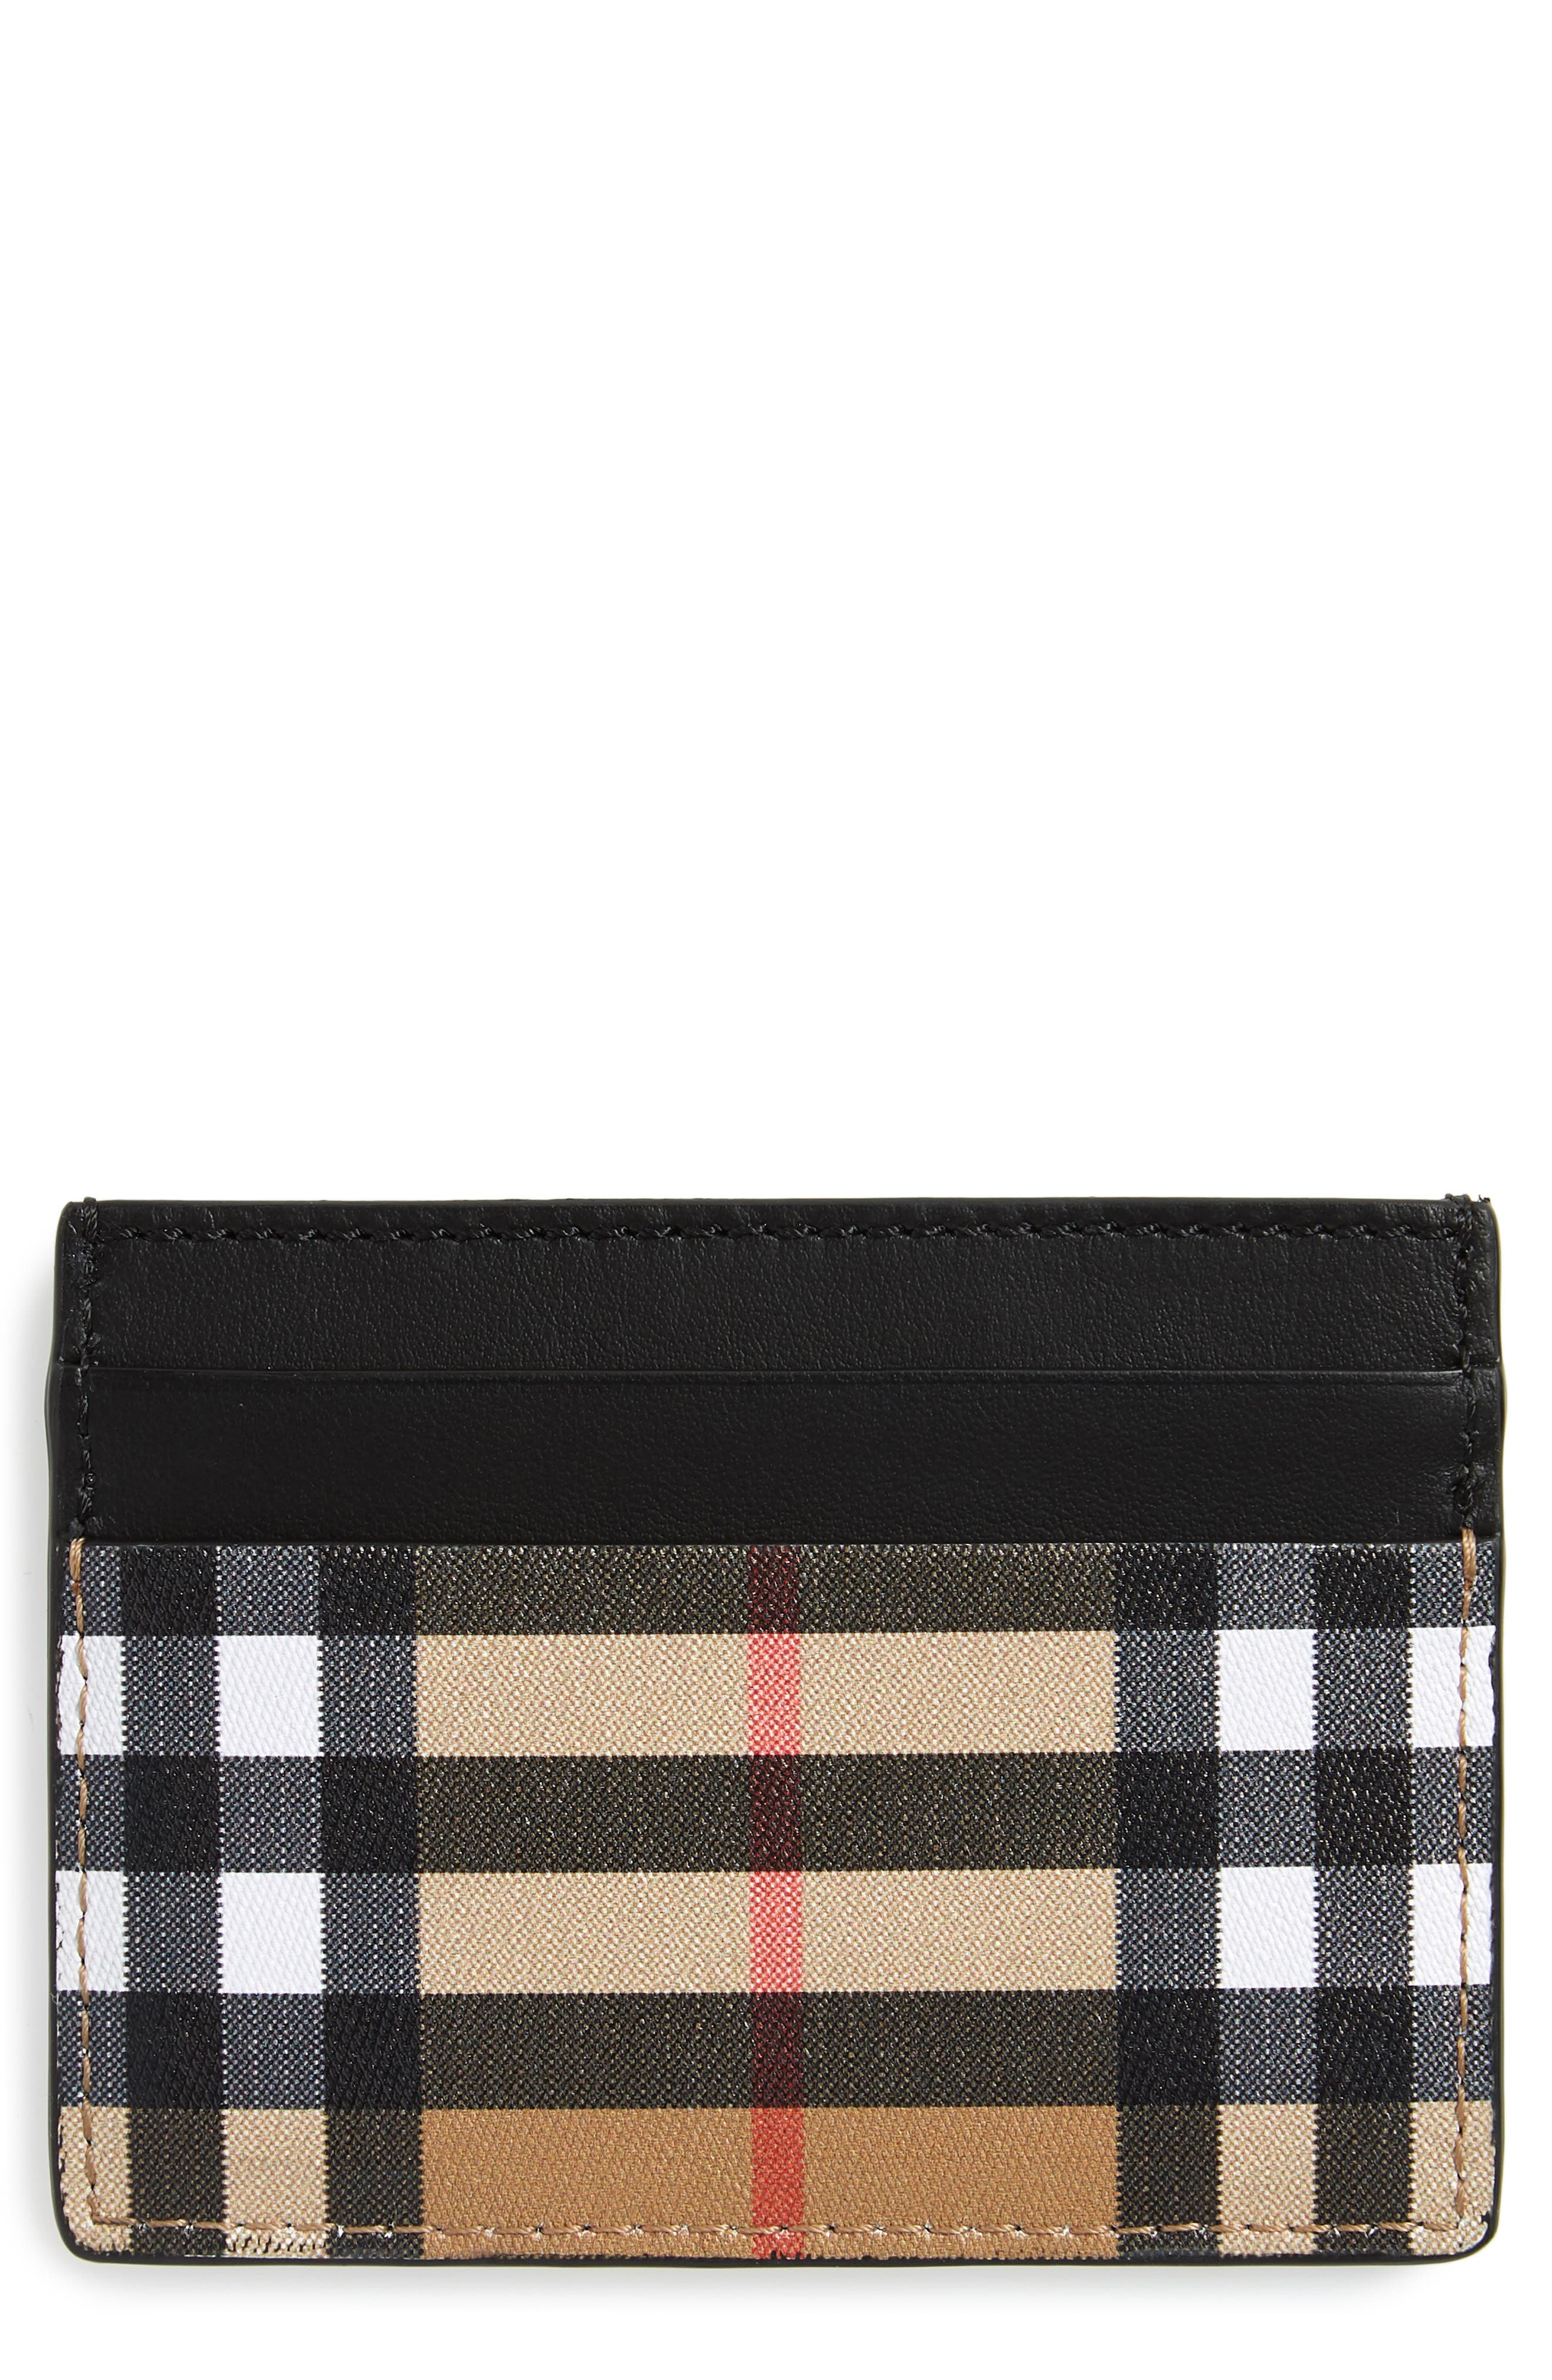 BURBERRY, Horseferry Leather Card Case, Main thumbnail 1, color, BLACK